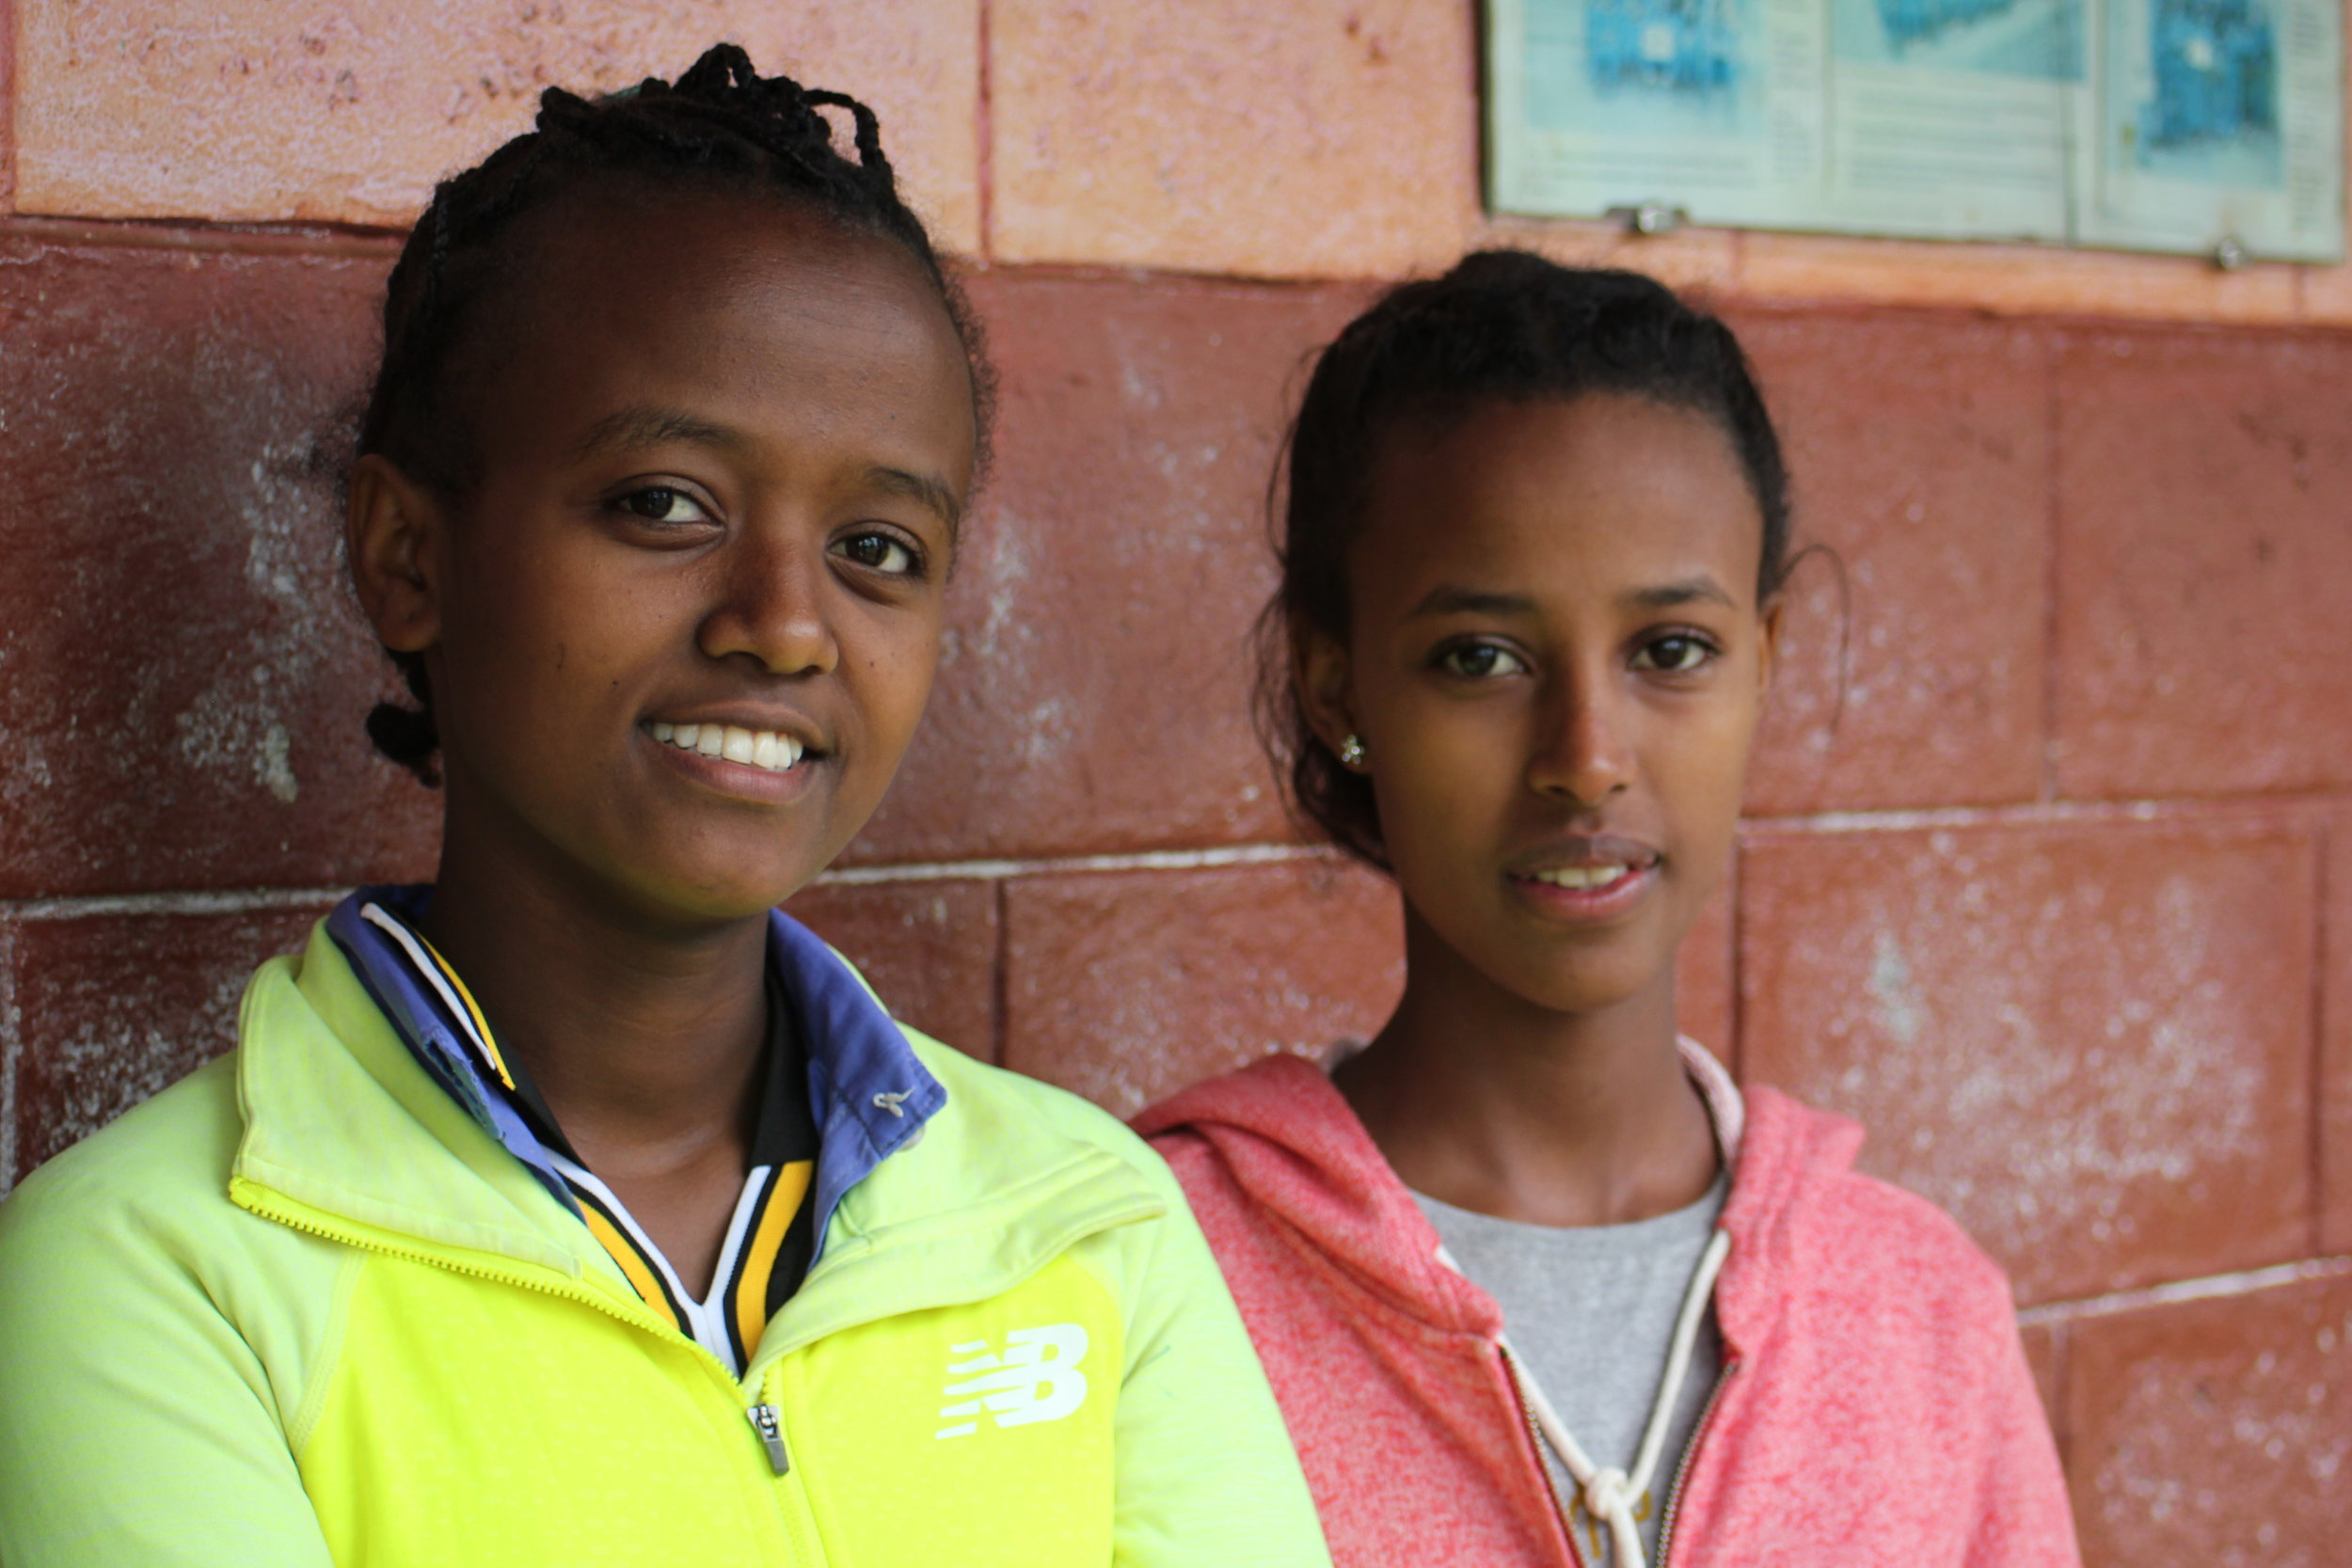 Yordanos (left) and Biruk (right), two young women who graduated after three years in the Girls Gotta Run program.